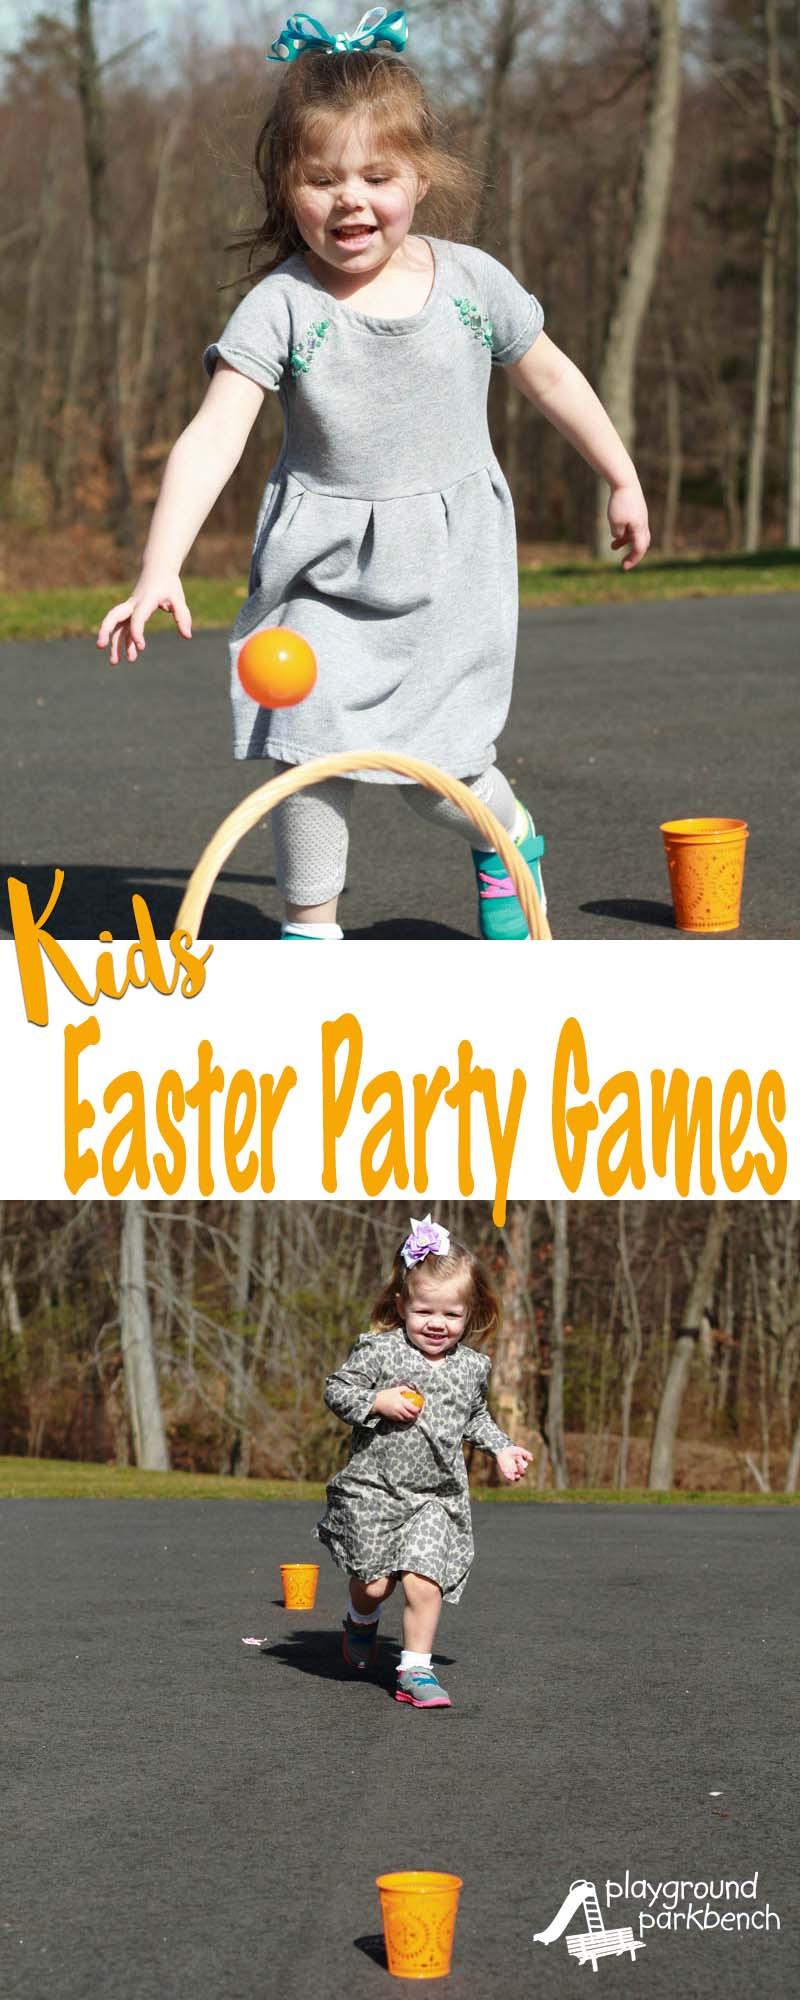 Easter Party Games For Kids  Kids Easter Party Games